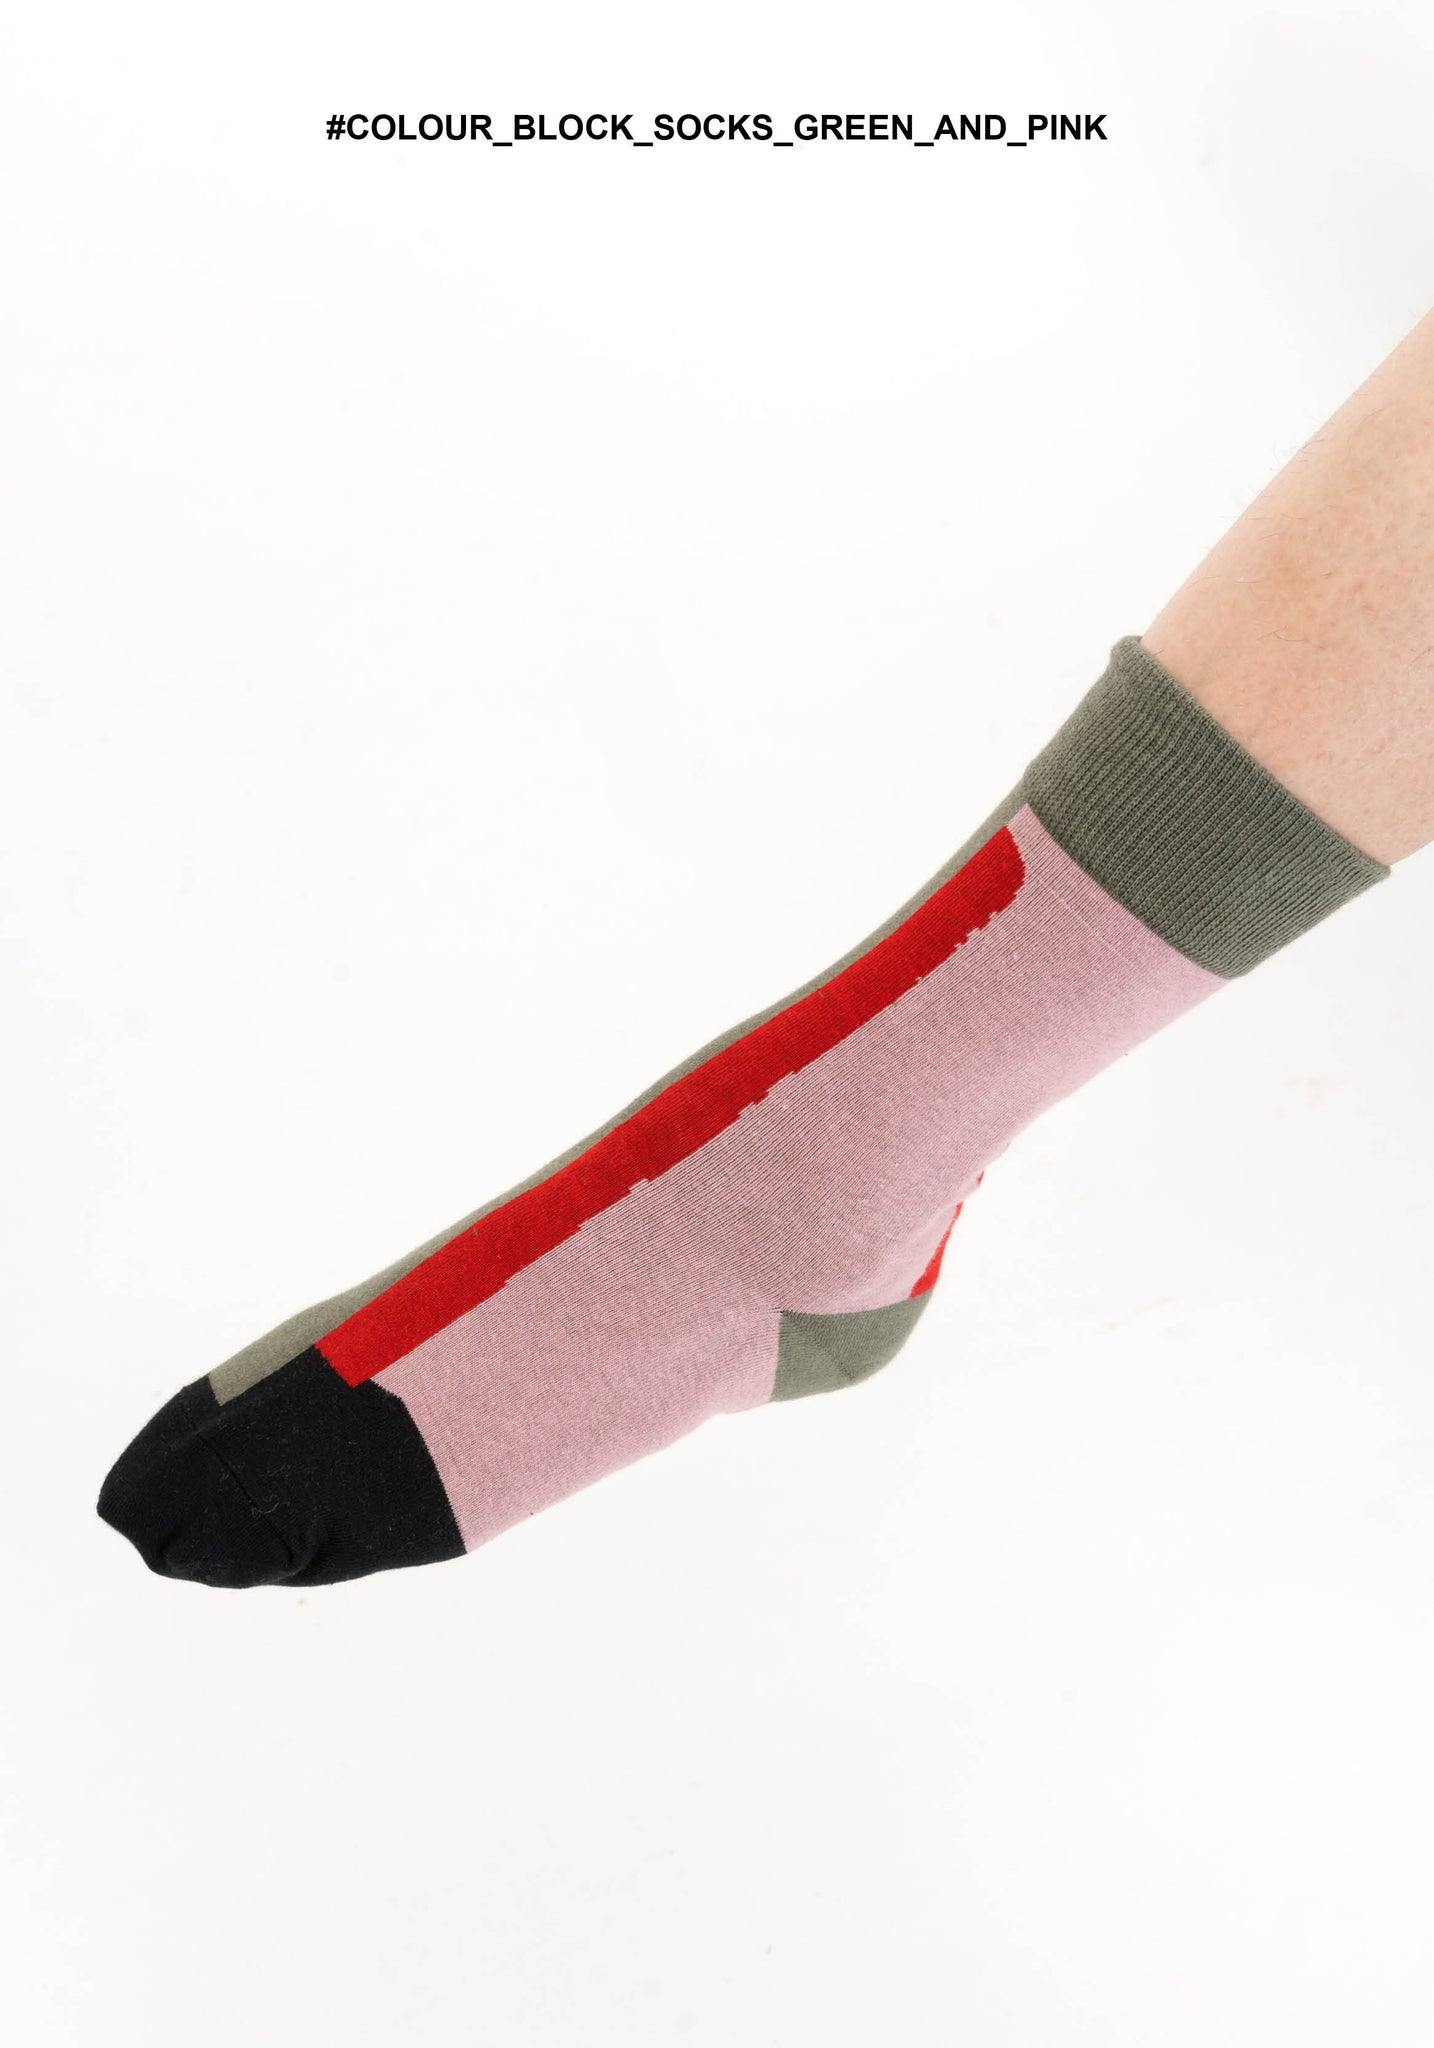 Colour Block Socks Green And Pink - whoami